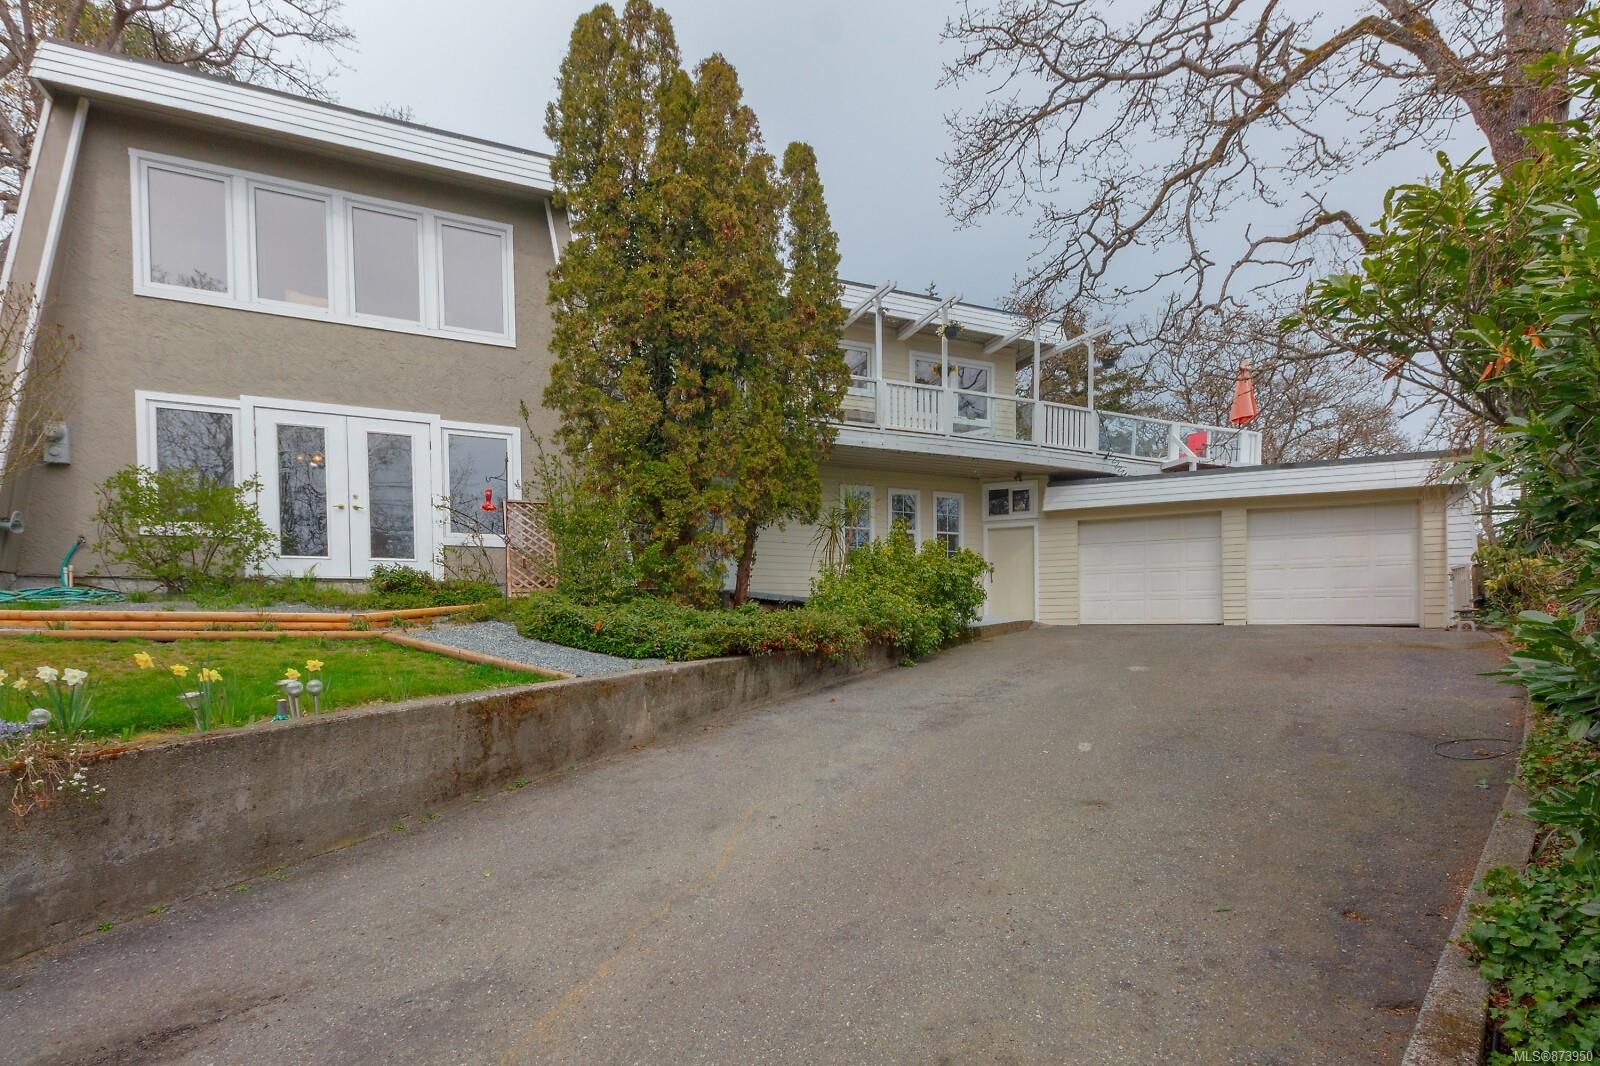 Main Photo: 1320 Queensbury Ave in Saanich: SE Maplewood House for sale (Saanich East)  : MLS®# 873950